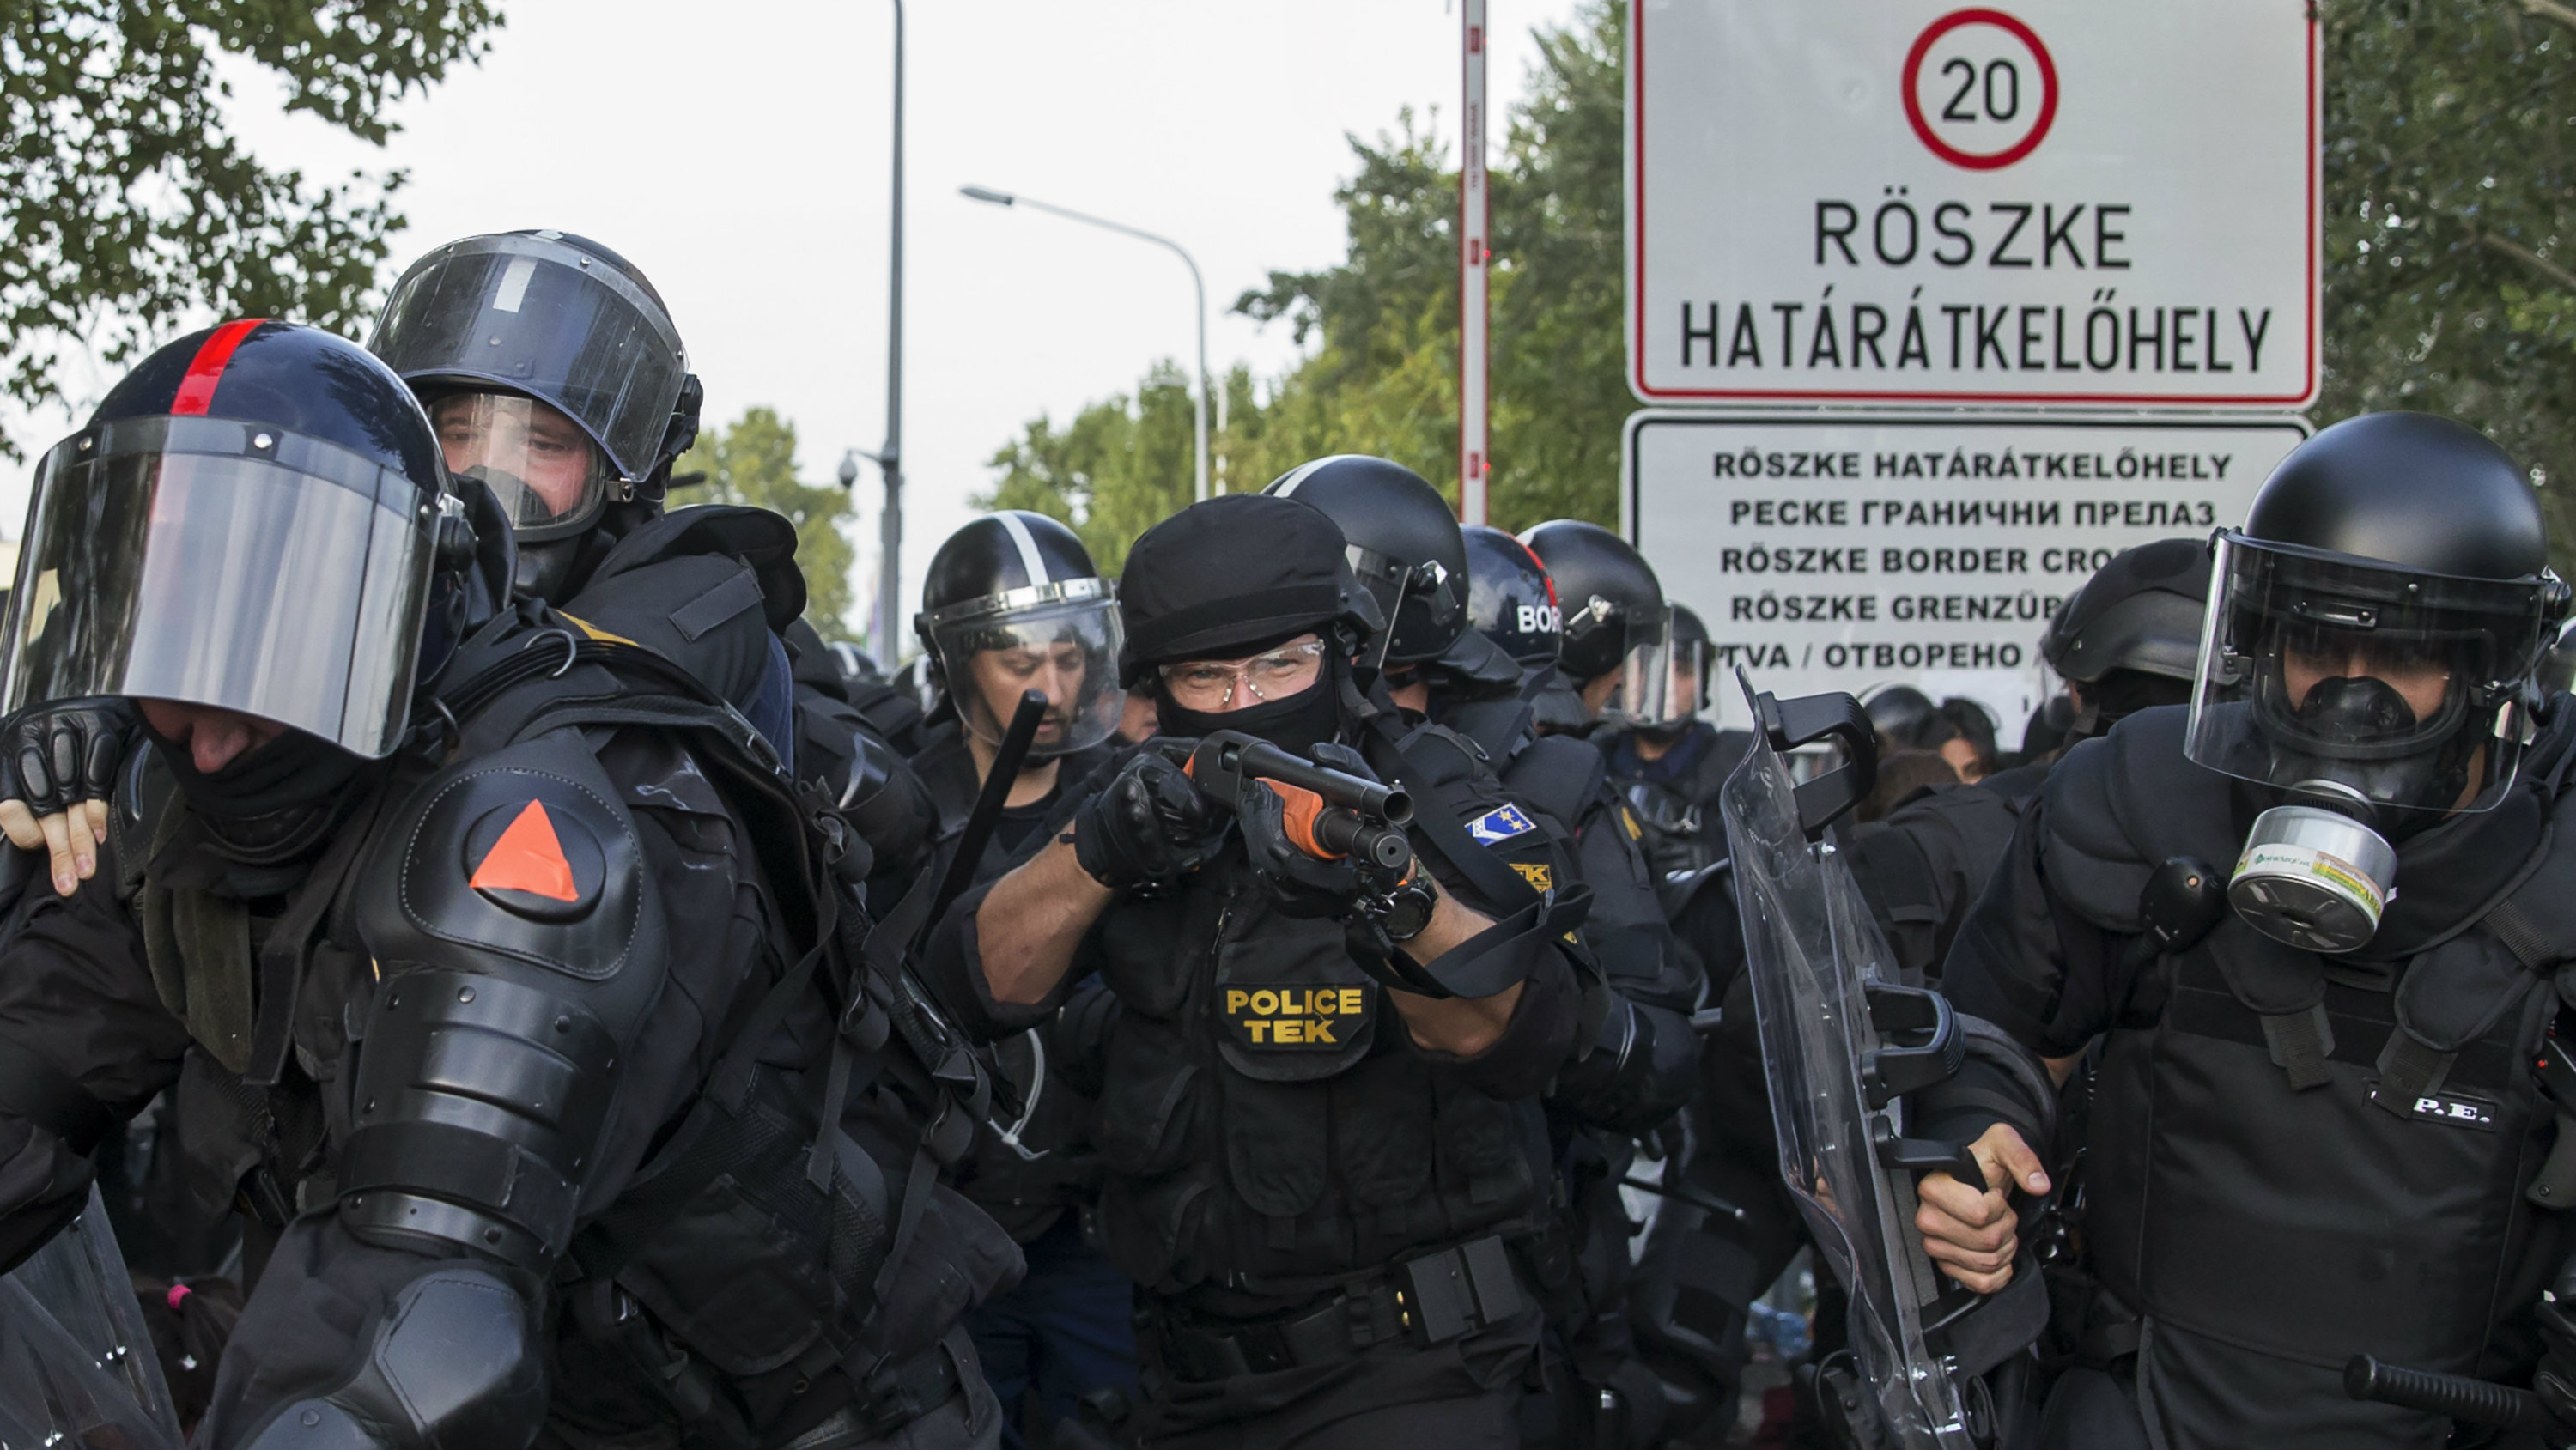 Hungarian riot police fight migrants at the border crossing with Serbia in Roszke, Hungary September 16, 2015.